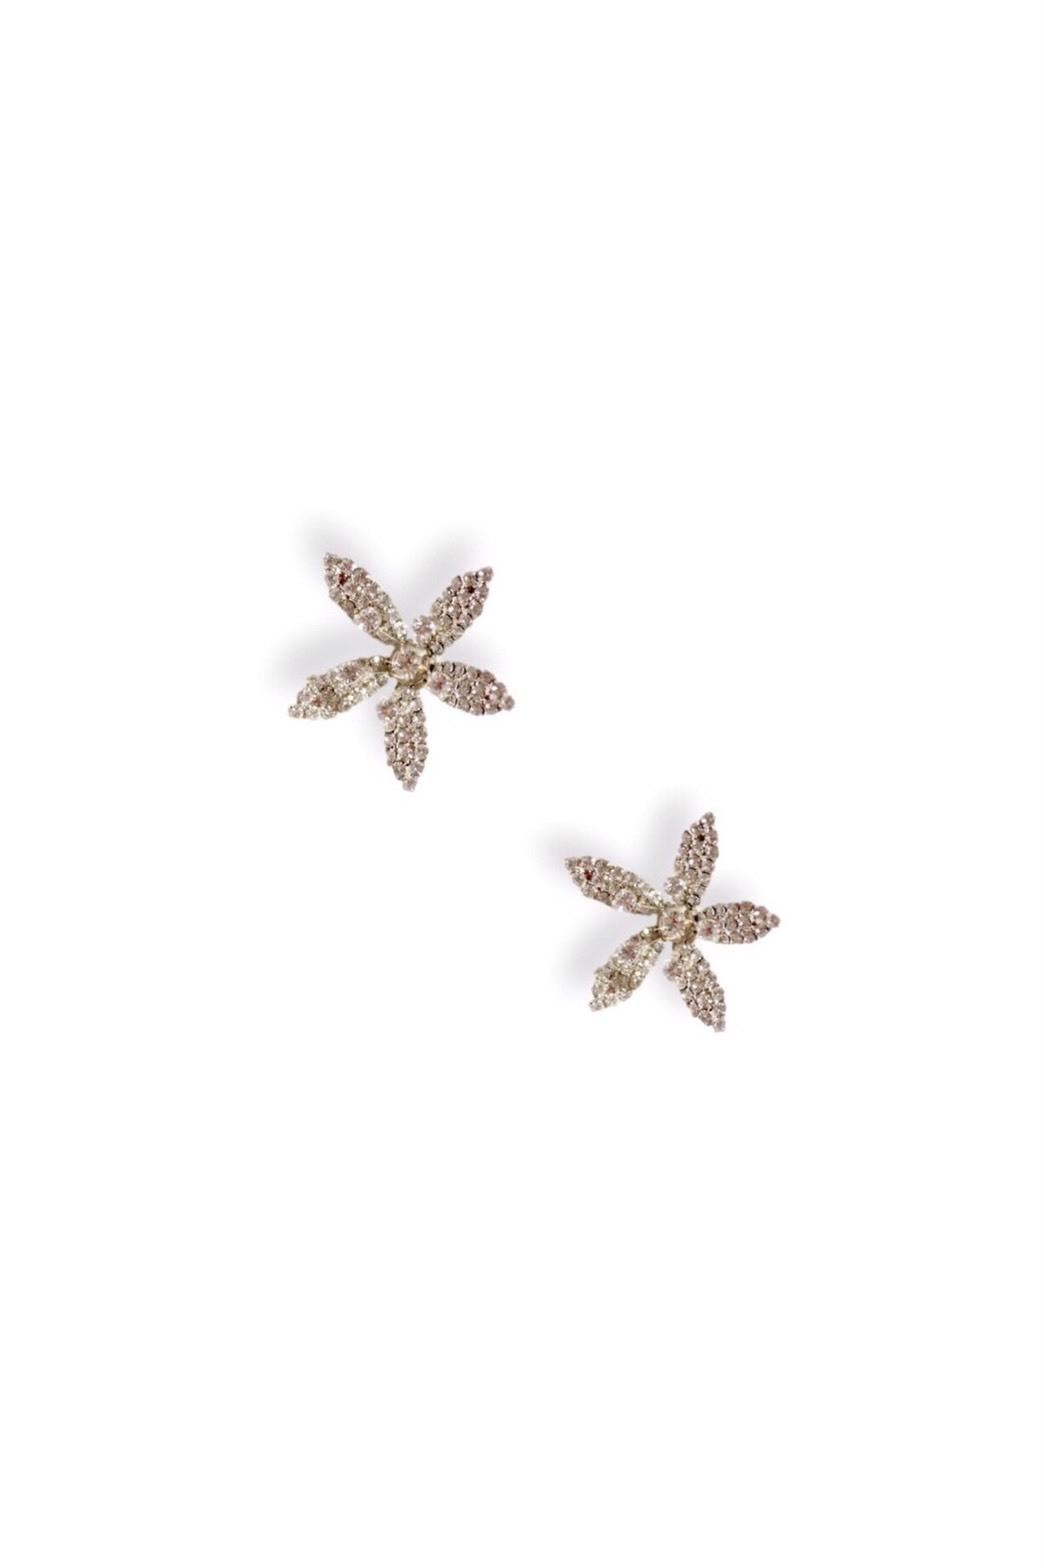 [SELL][Petite Crystal Orchid Pierce]by JENNIFER BEHR